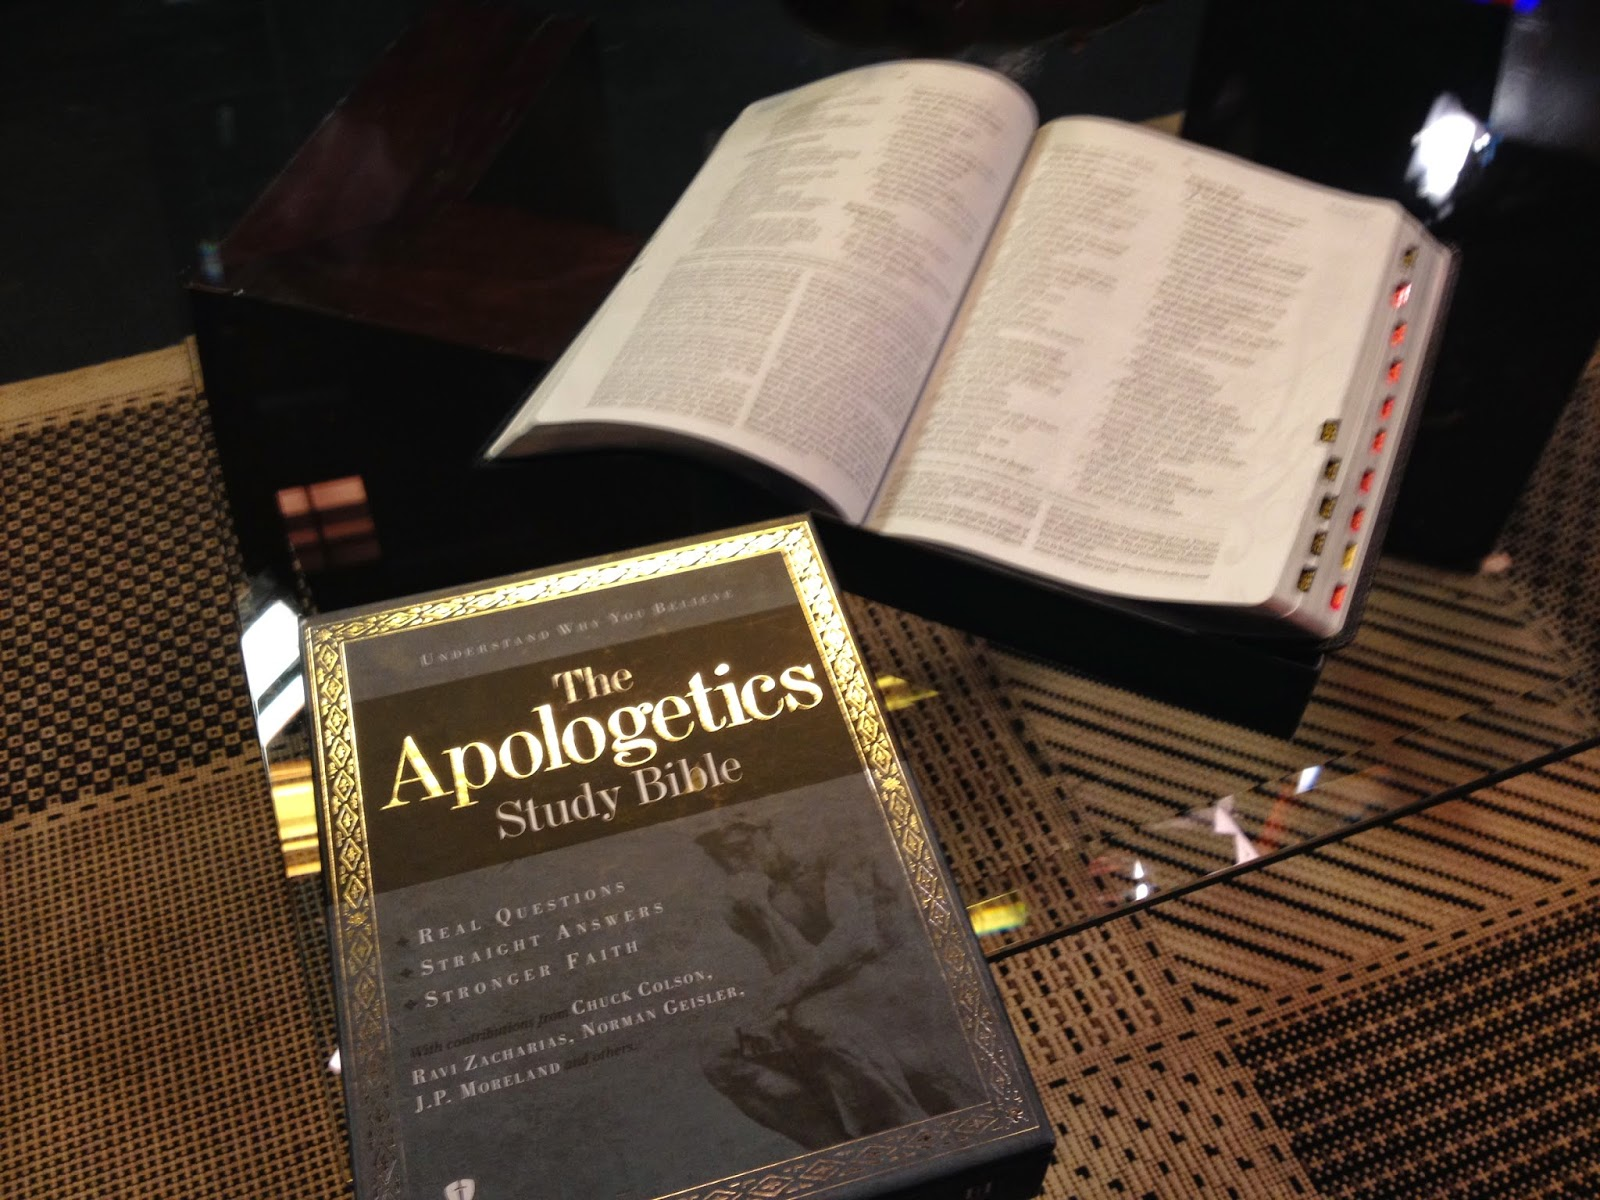 Apologetics - Daily Bible Online